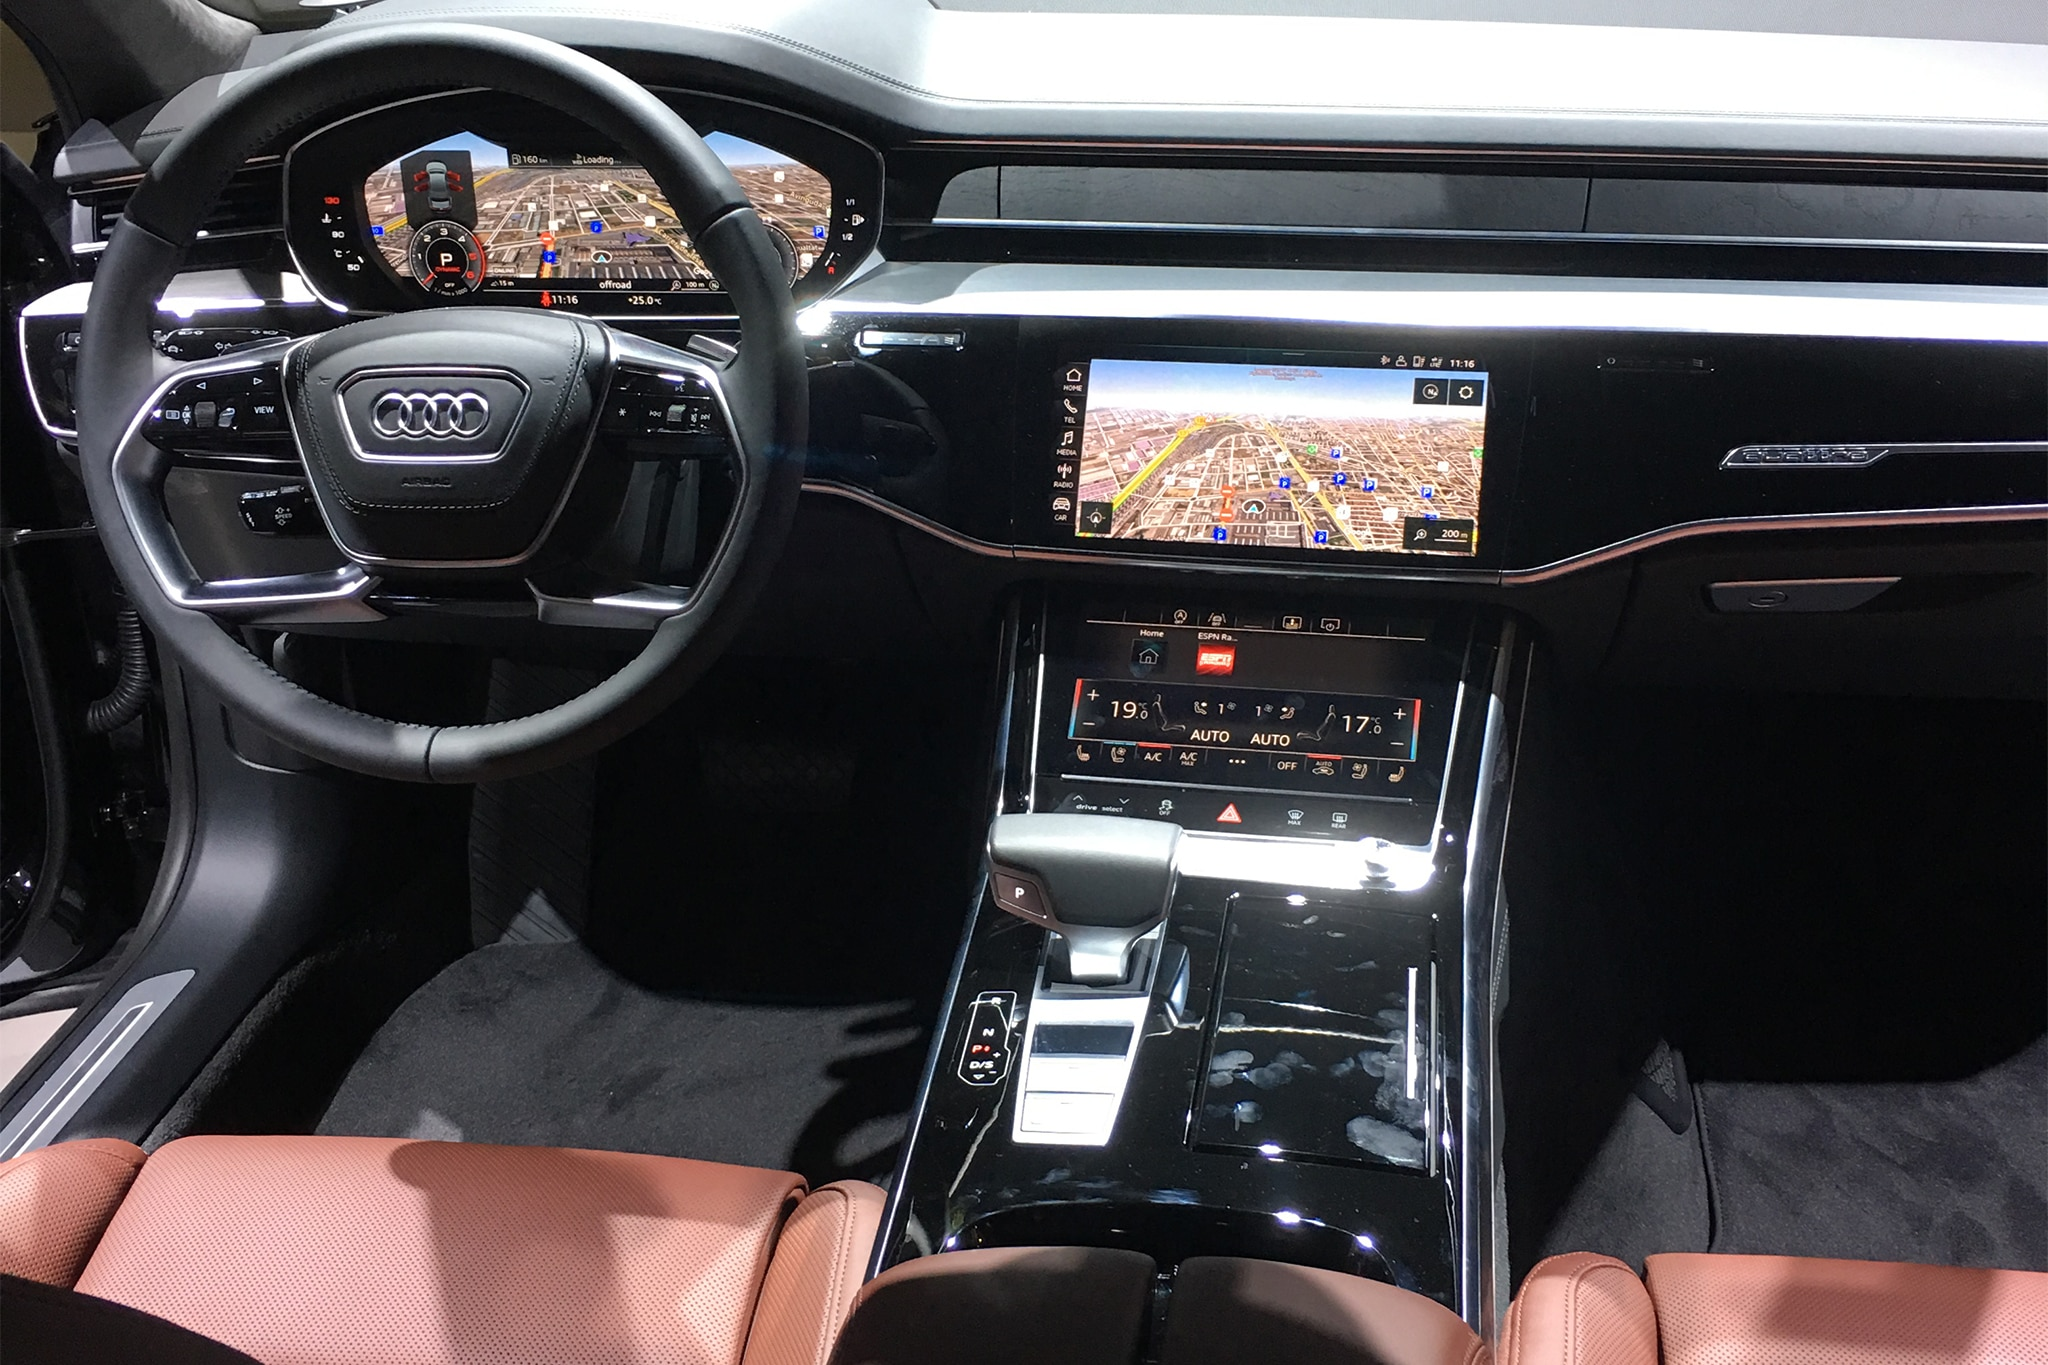 2019 Audi A8 Rolls in Ready to Drive Itself | Automobile ...